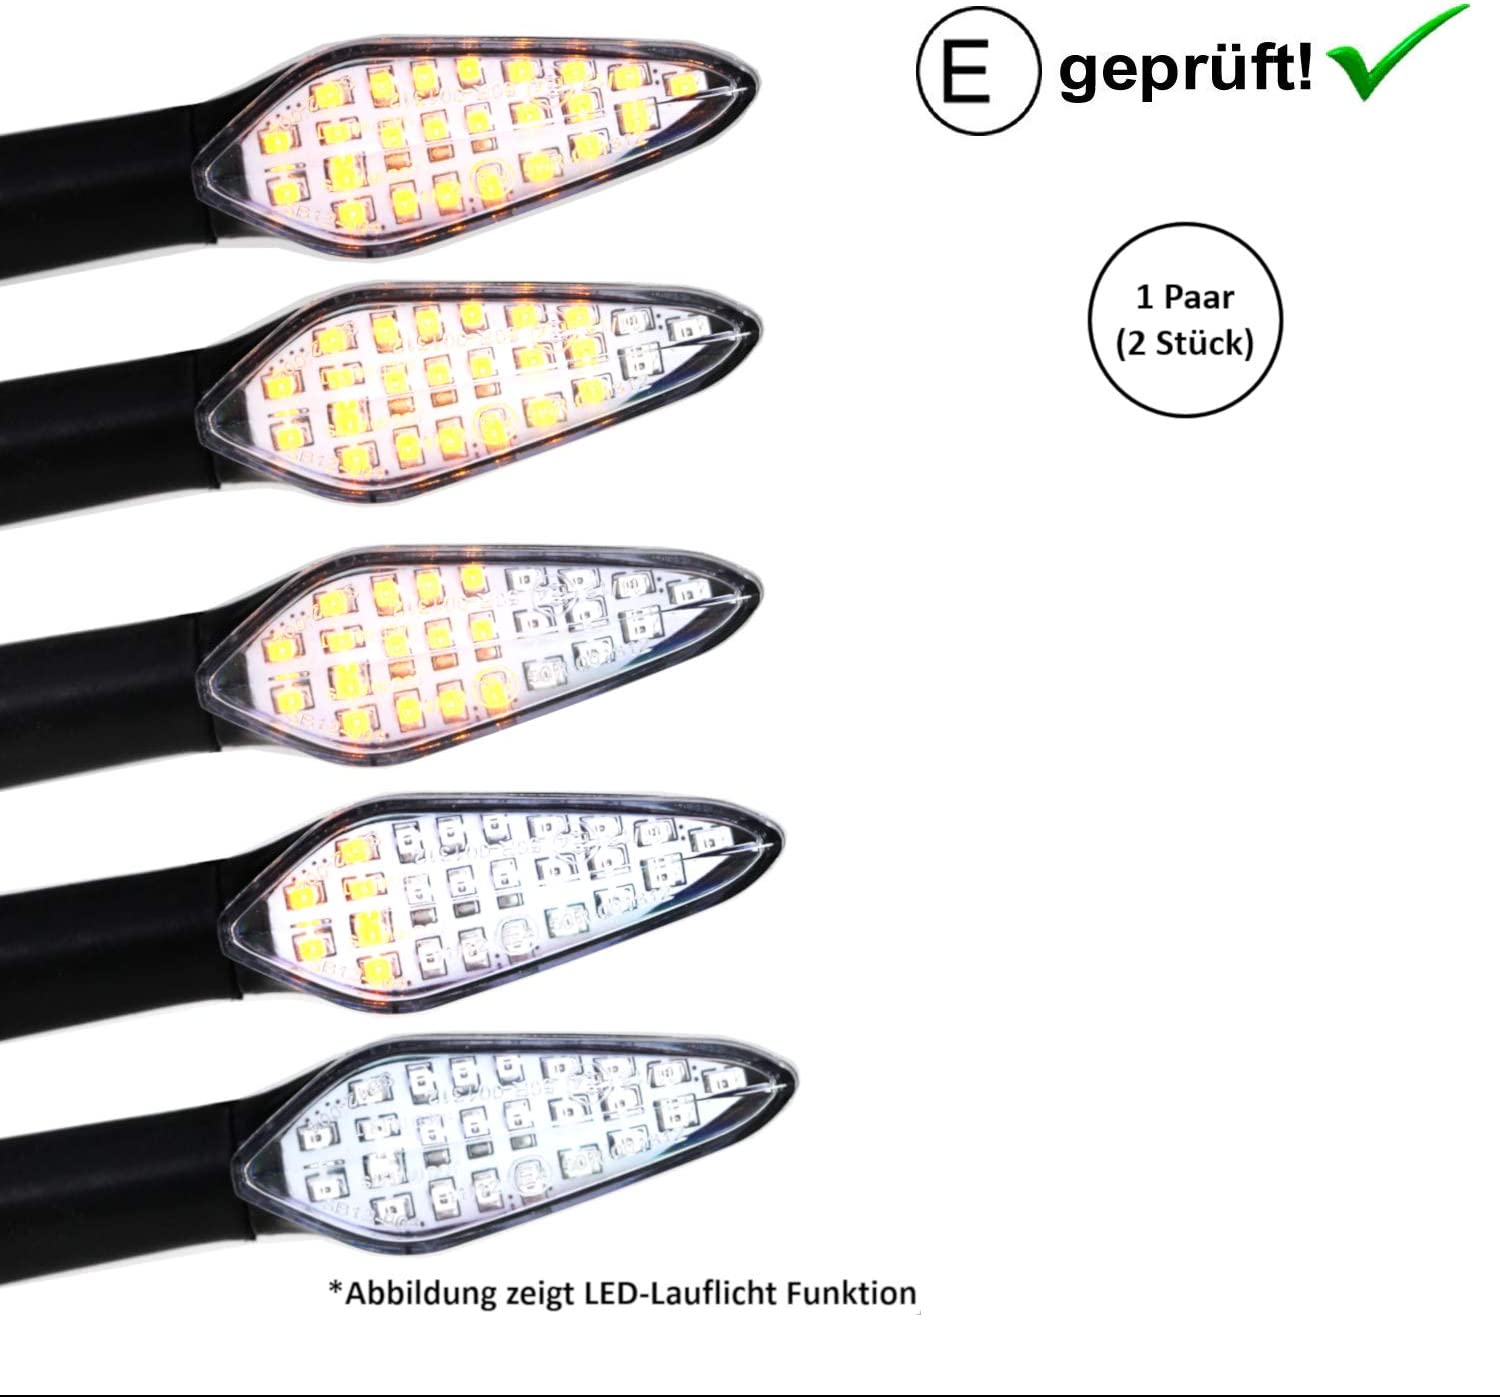 E-Test/é // B5 Lot de 2 clignotants LED Hond-a CBF 250 Shadow 125 VT 125 C Shadow PES